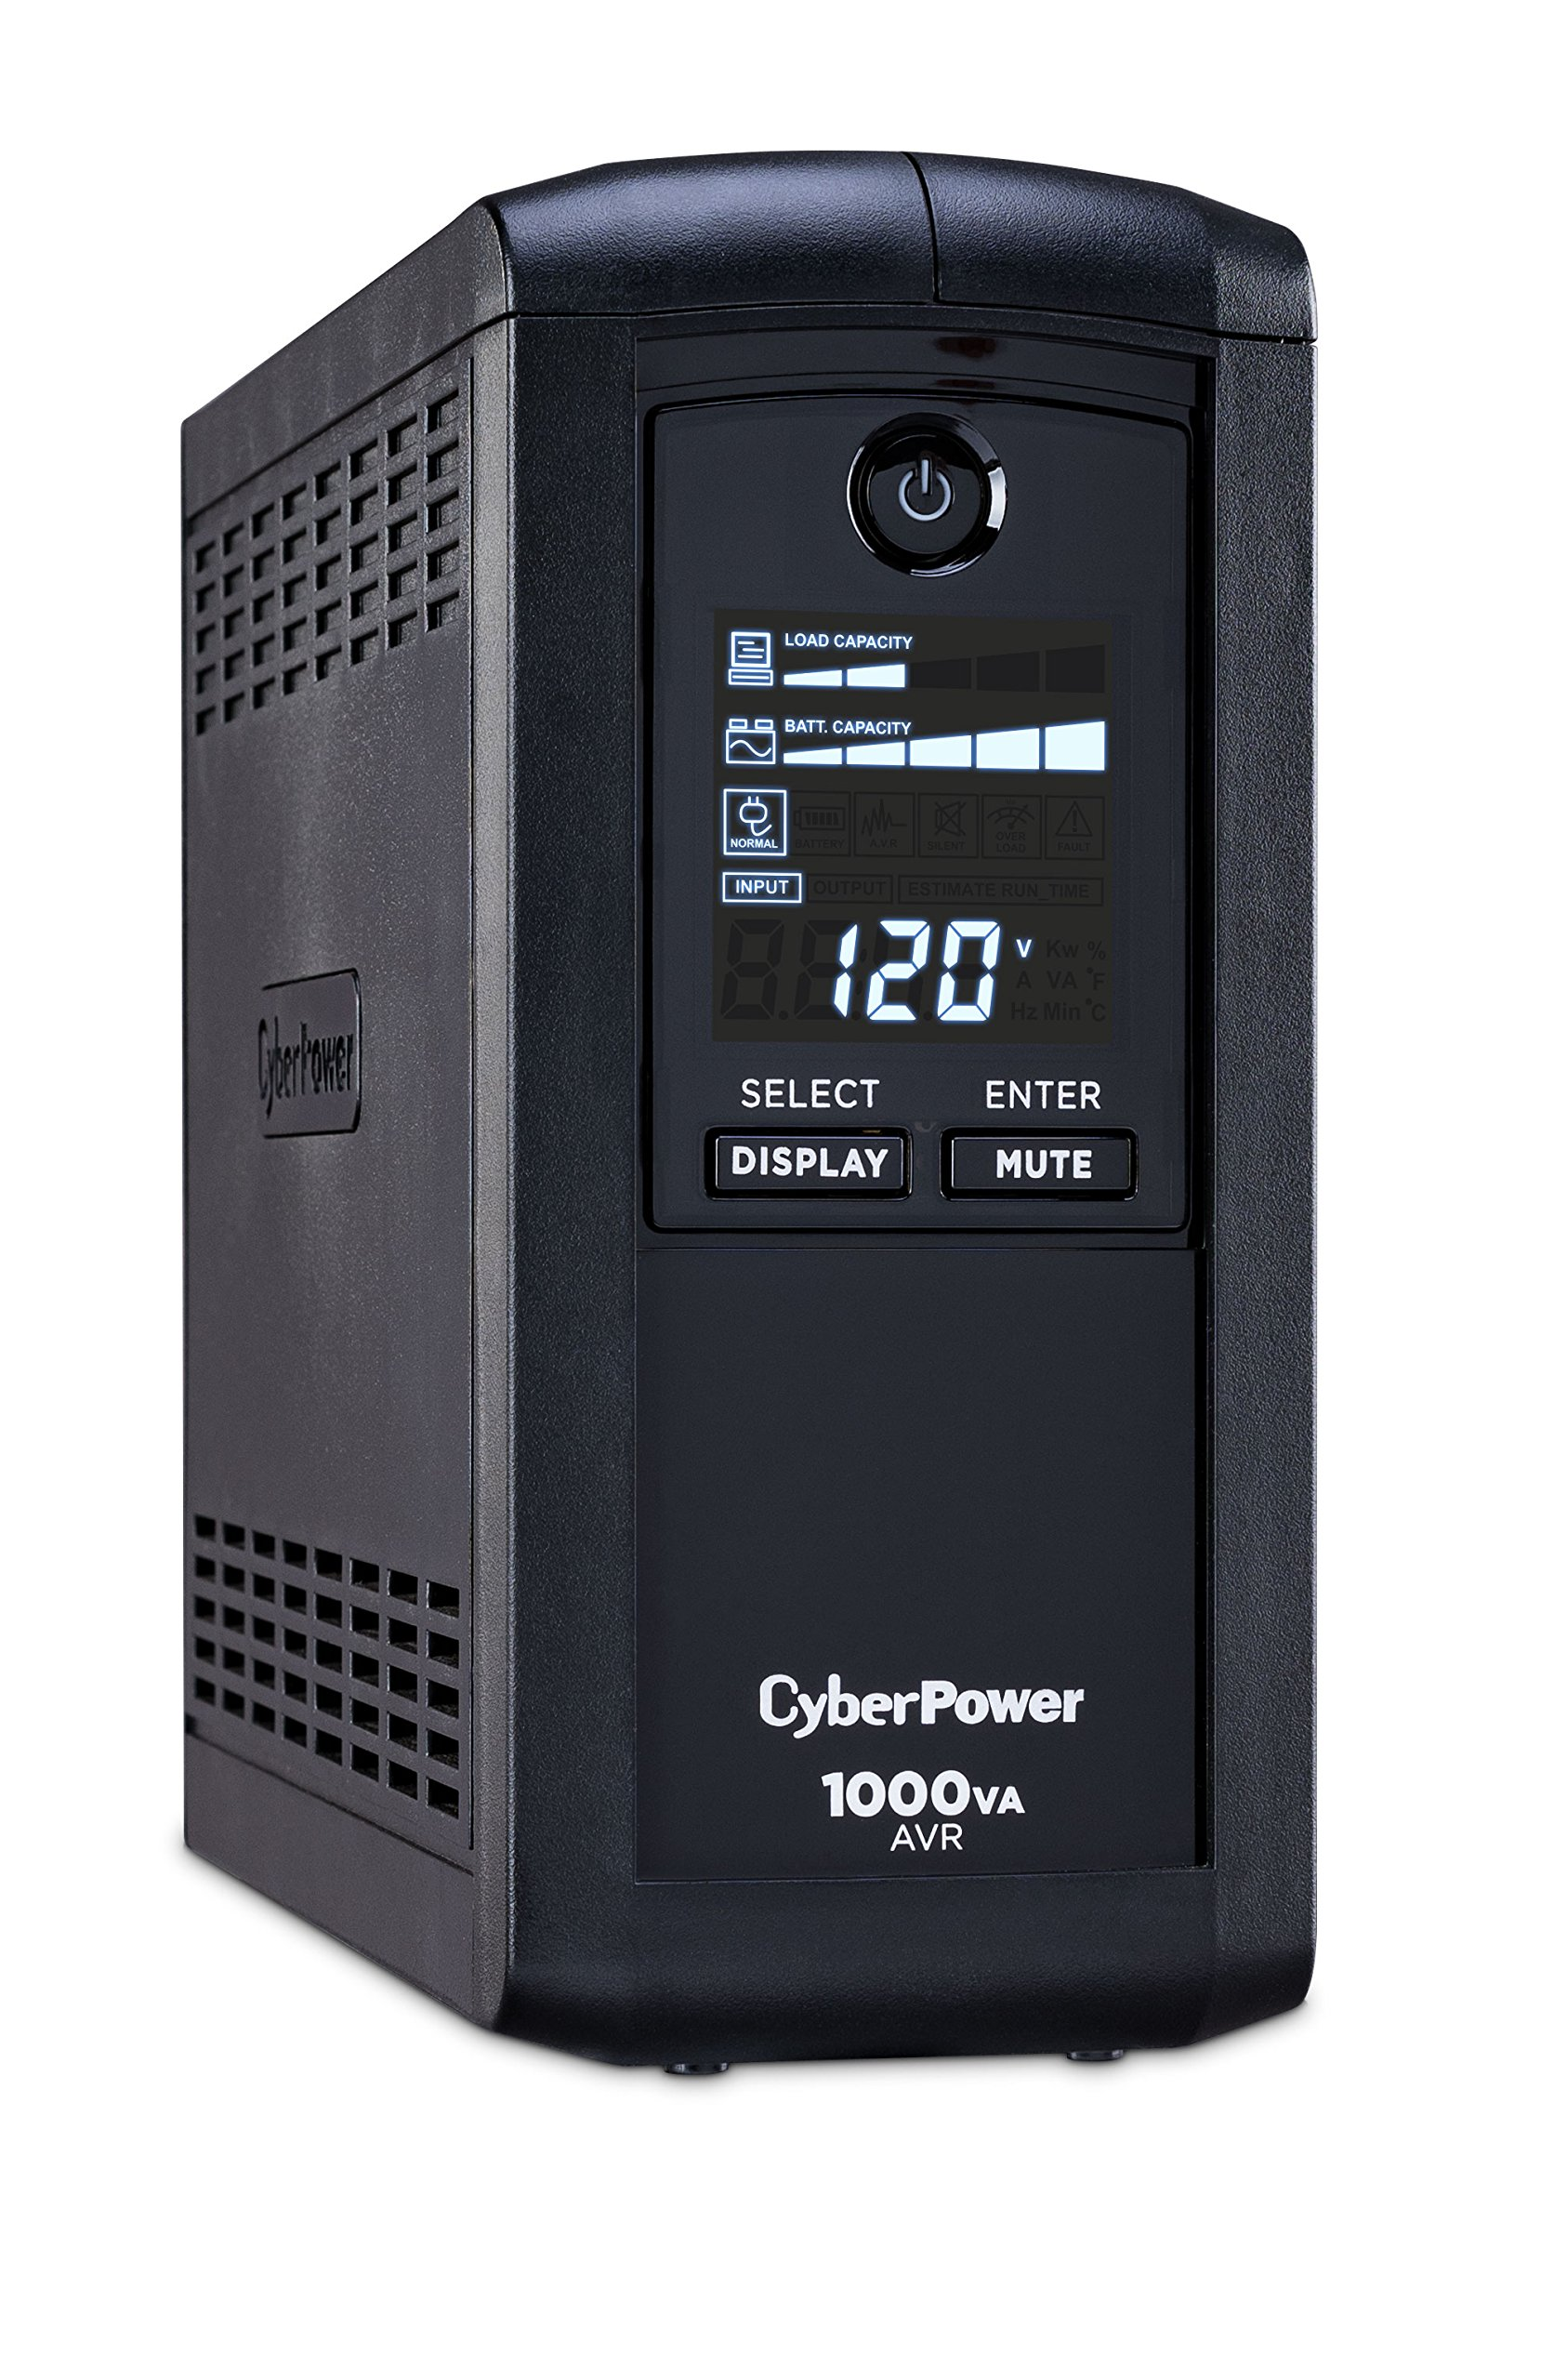 CyberPower CP1000AVRLCD Intelligent LCD UPS System, 1000VA/600W, 9 Outlets, AVR, Mini-Tower by CyberPower (Image #1)